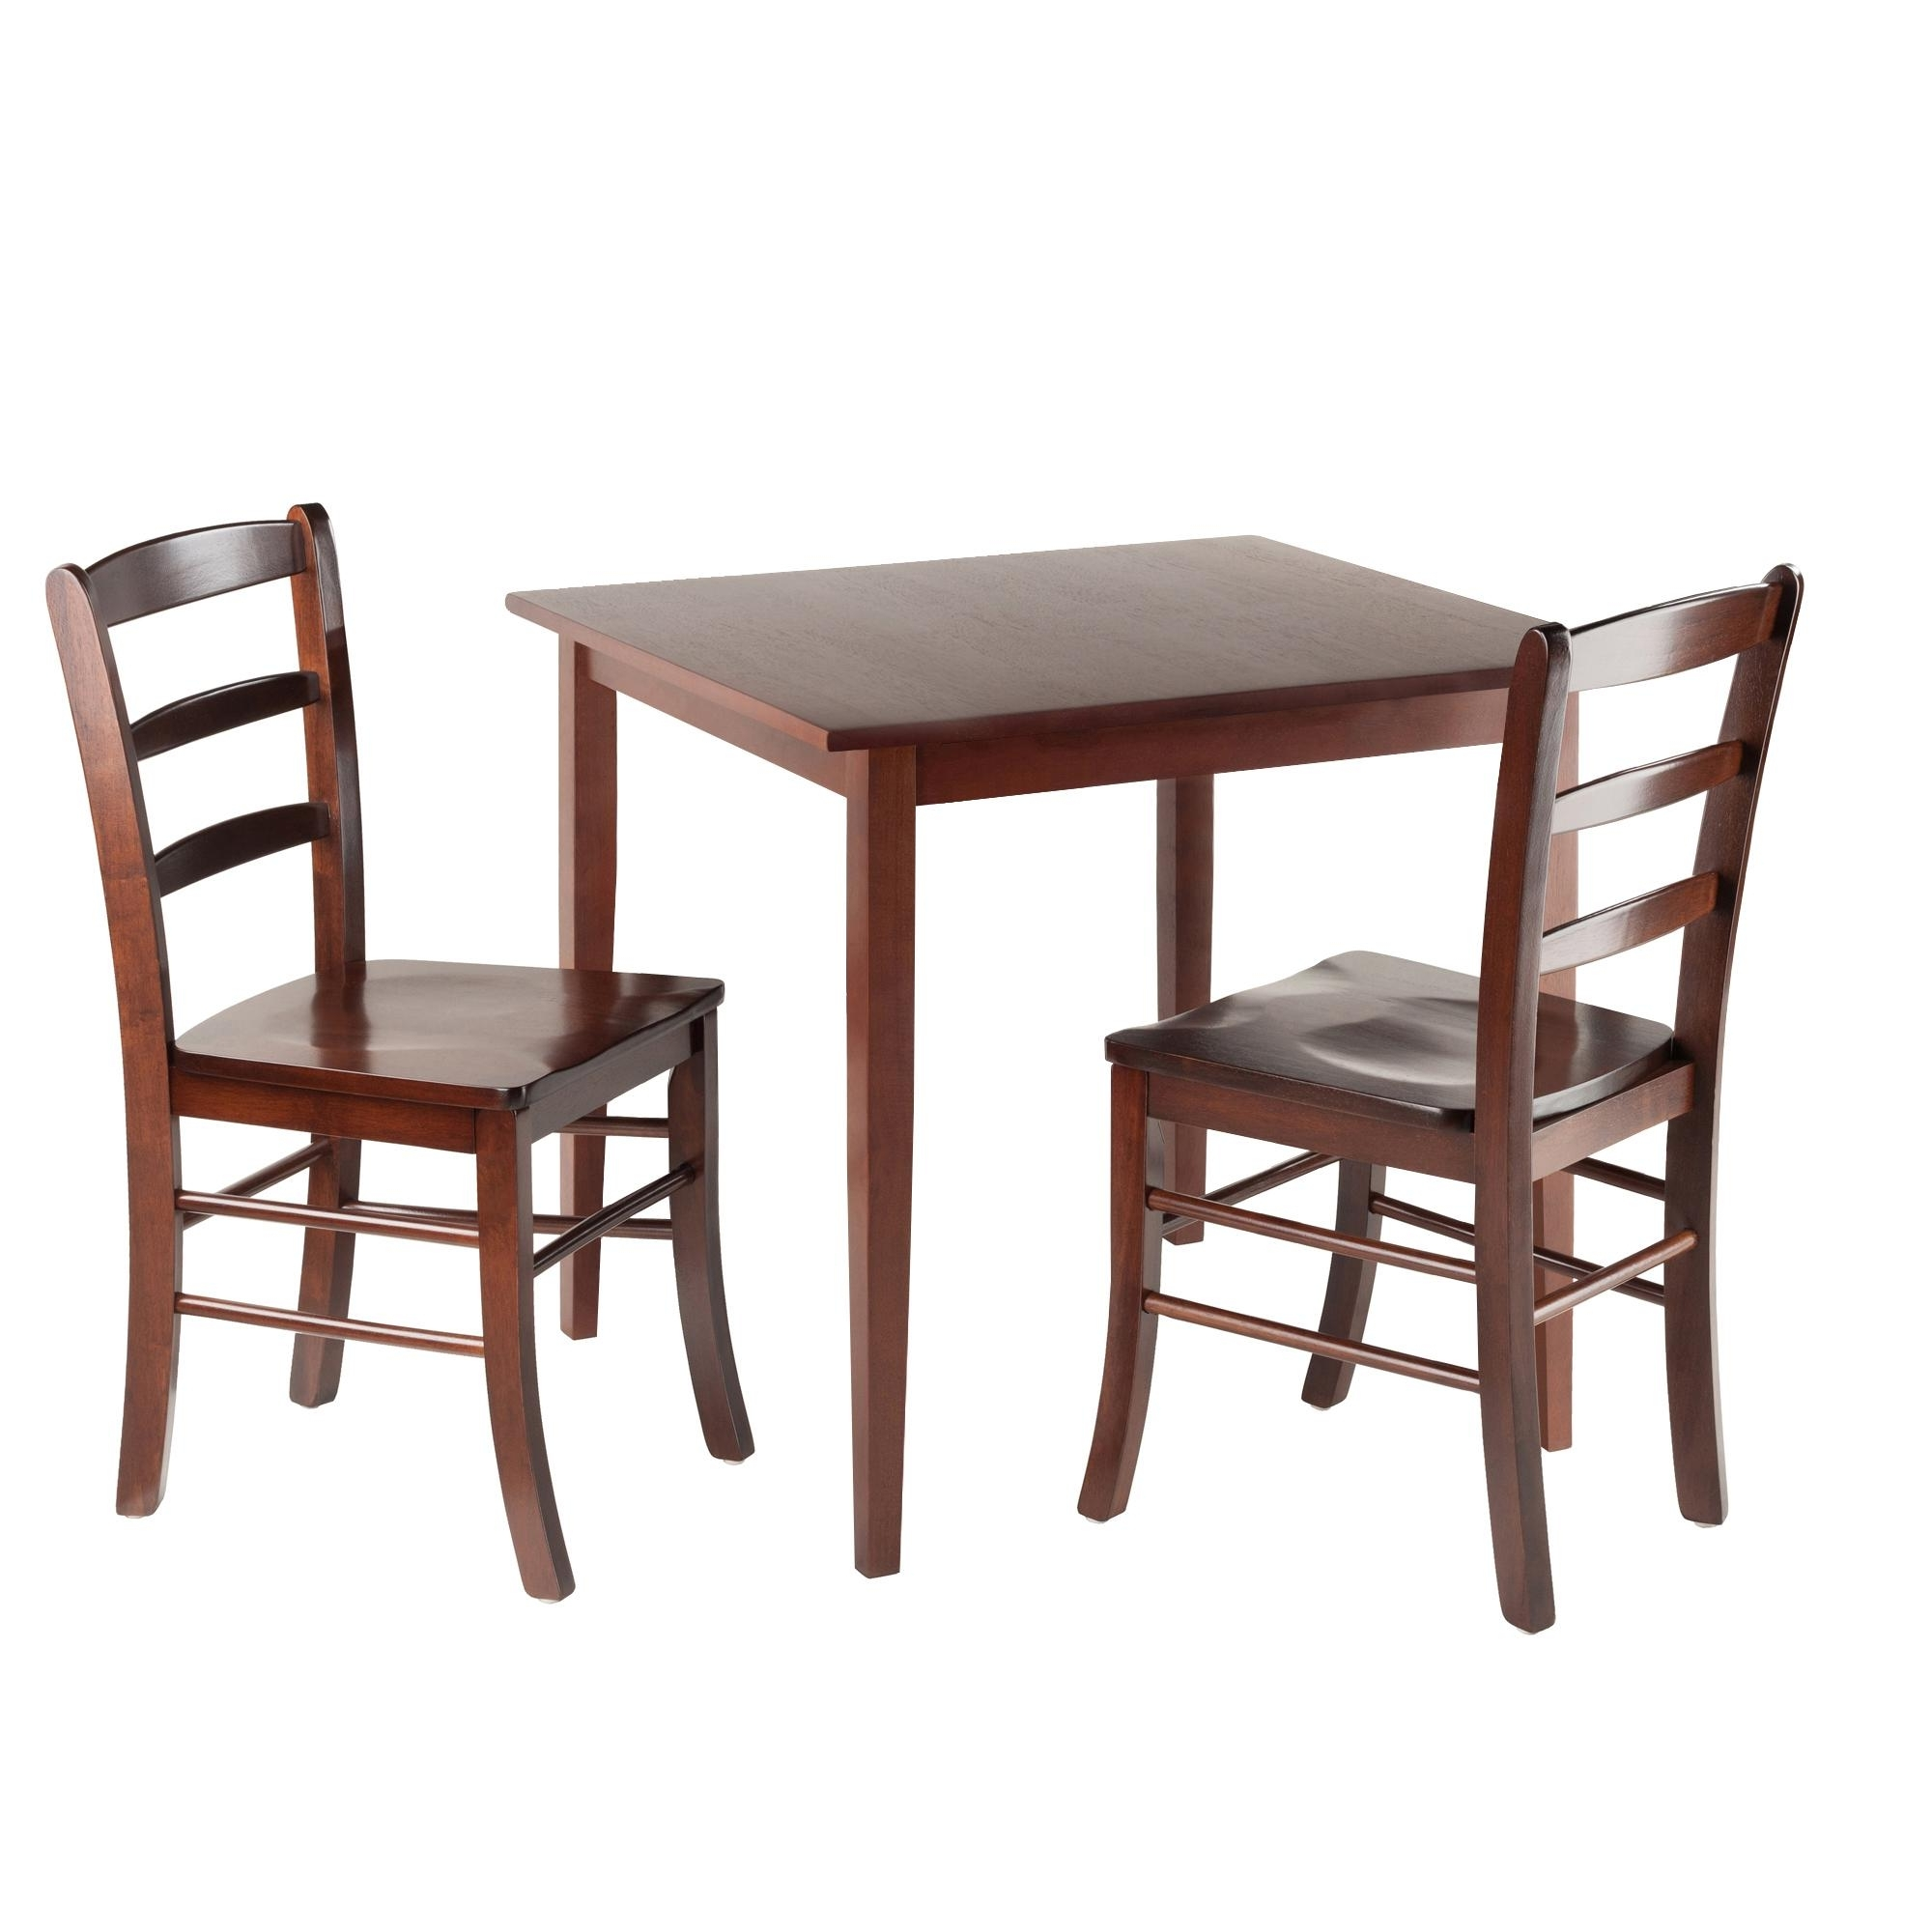 Amazon – Winsome Groveland Square Dining Table With 2 Chairs, 3 Within Recent Square Oak Dining Tables (Gallery 6 of 25)